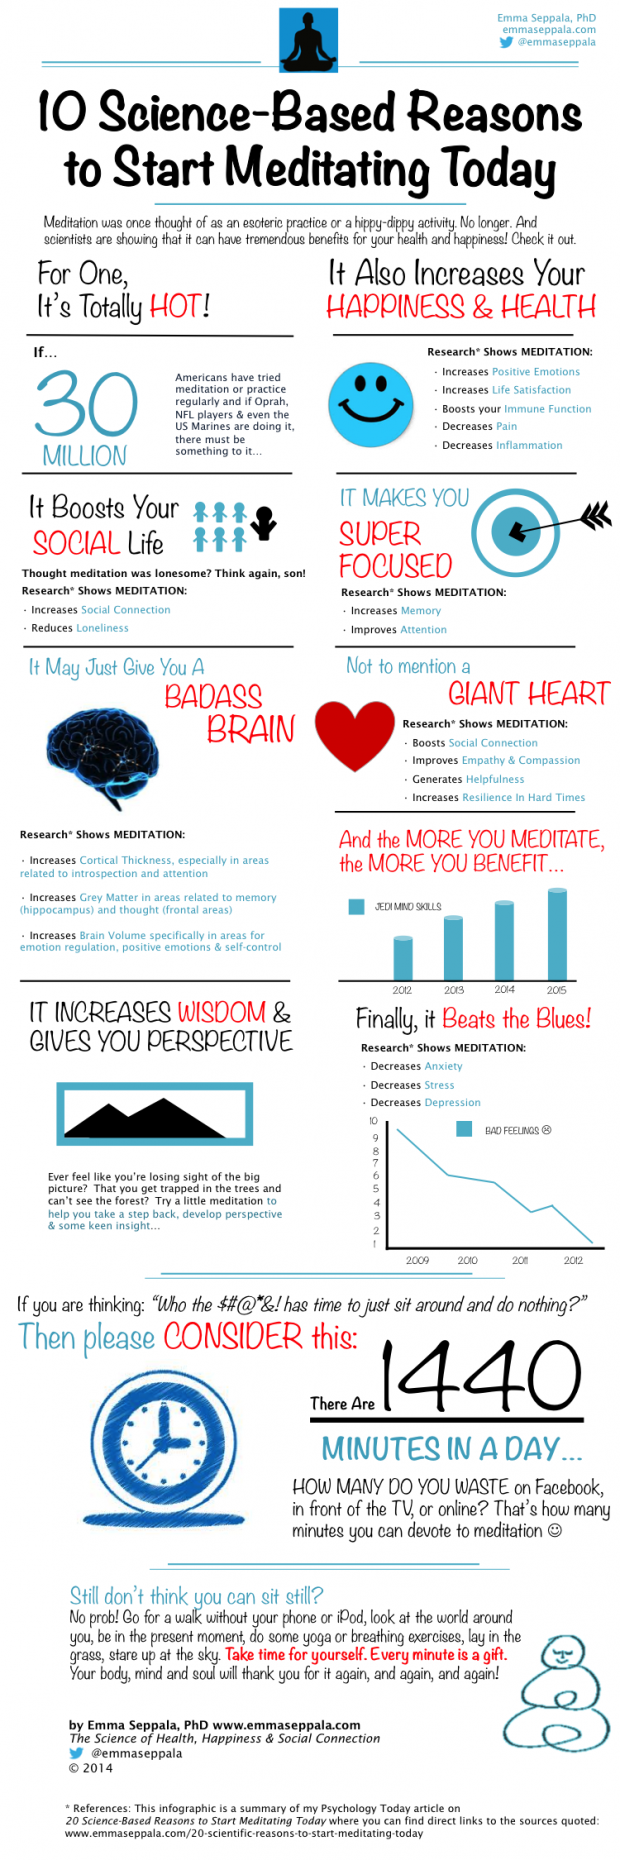 07 10-Science-Based-Reasons-To-Start-Meditating-Today-INFOGRAPHIC-620x1860